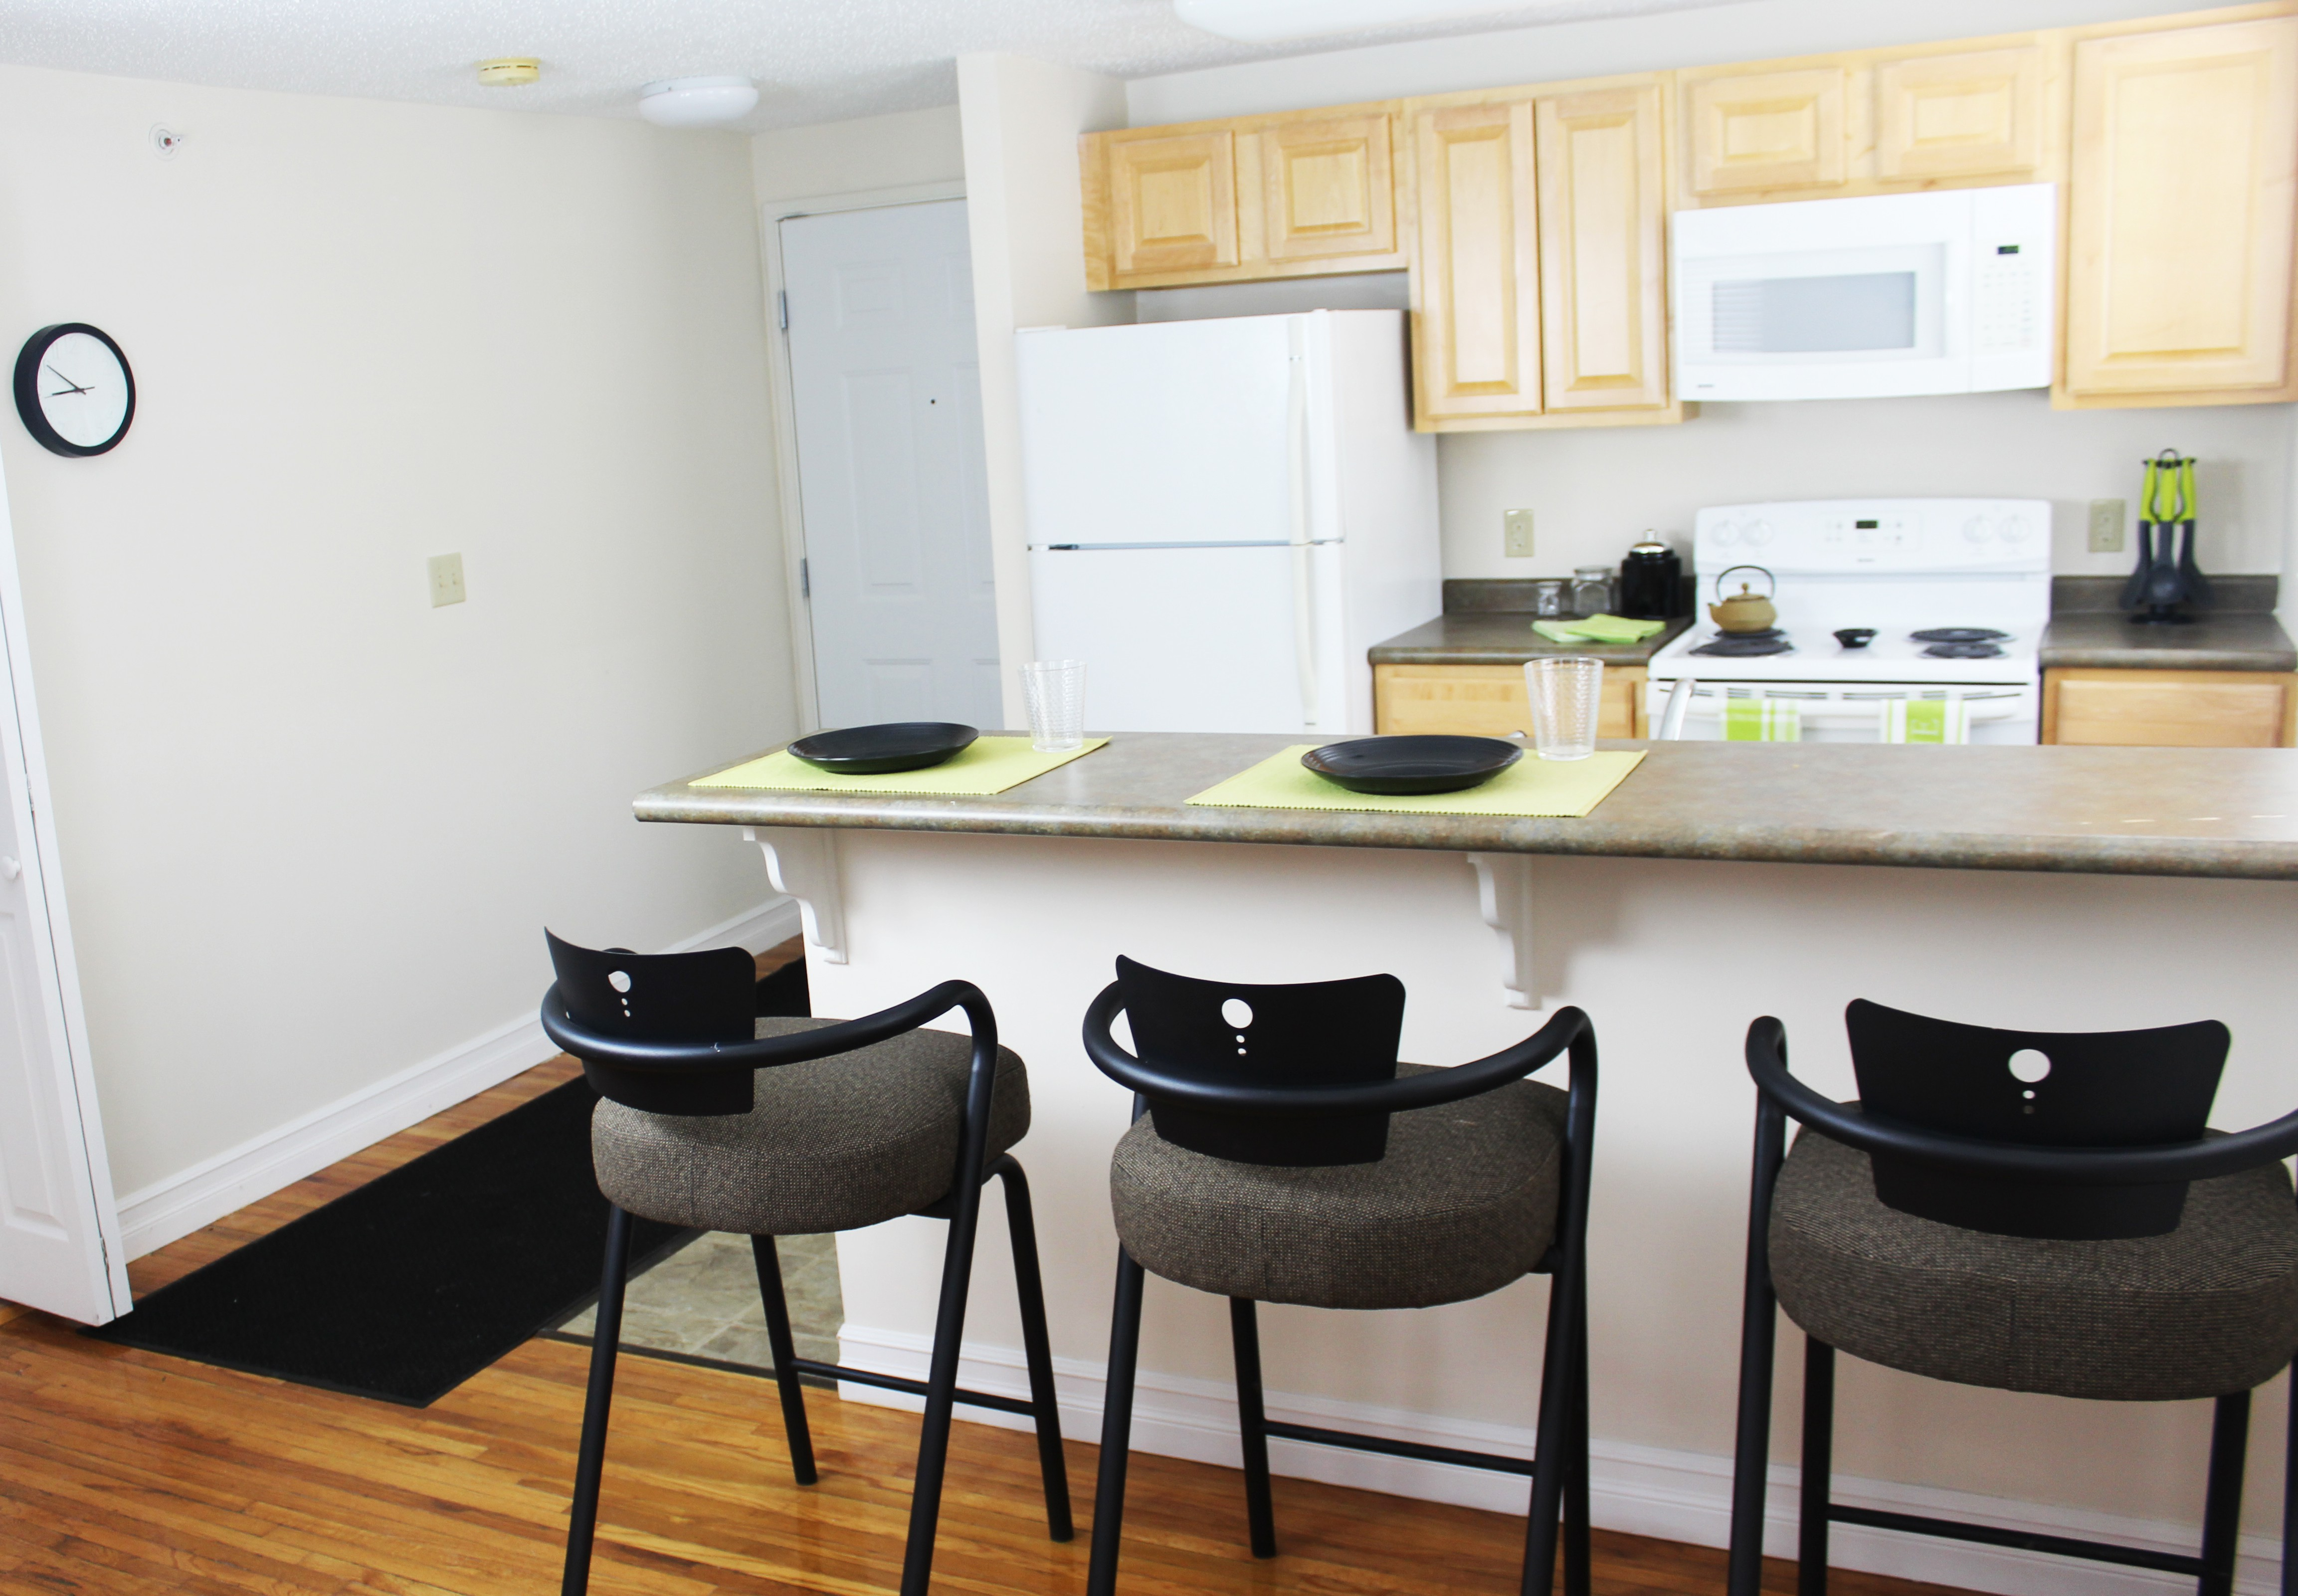 Collegiate Village - Student Housing By Bed and by Bedroom for rent